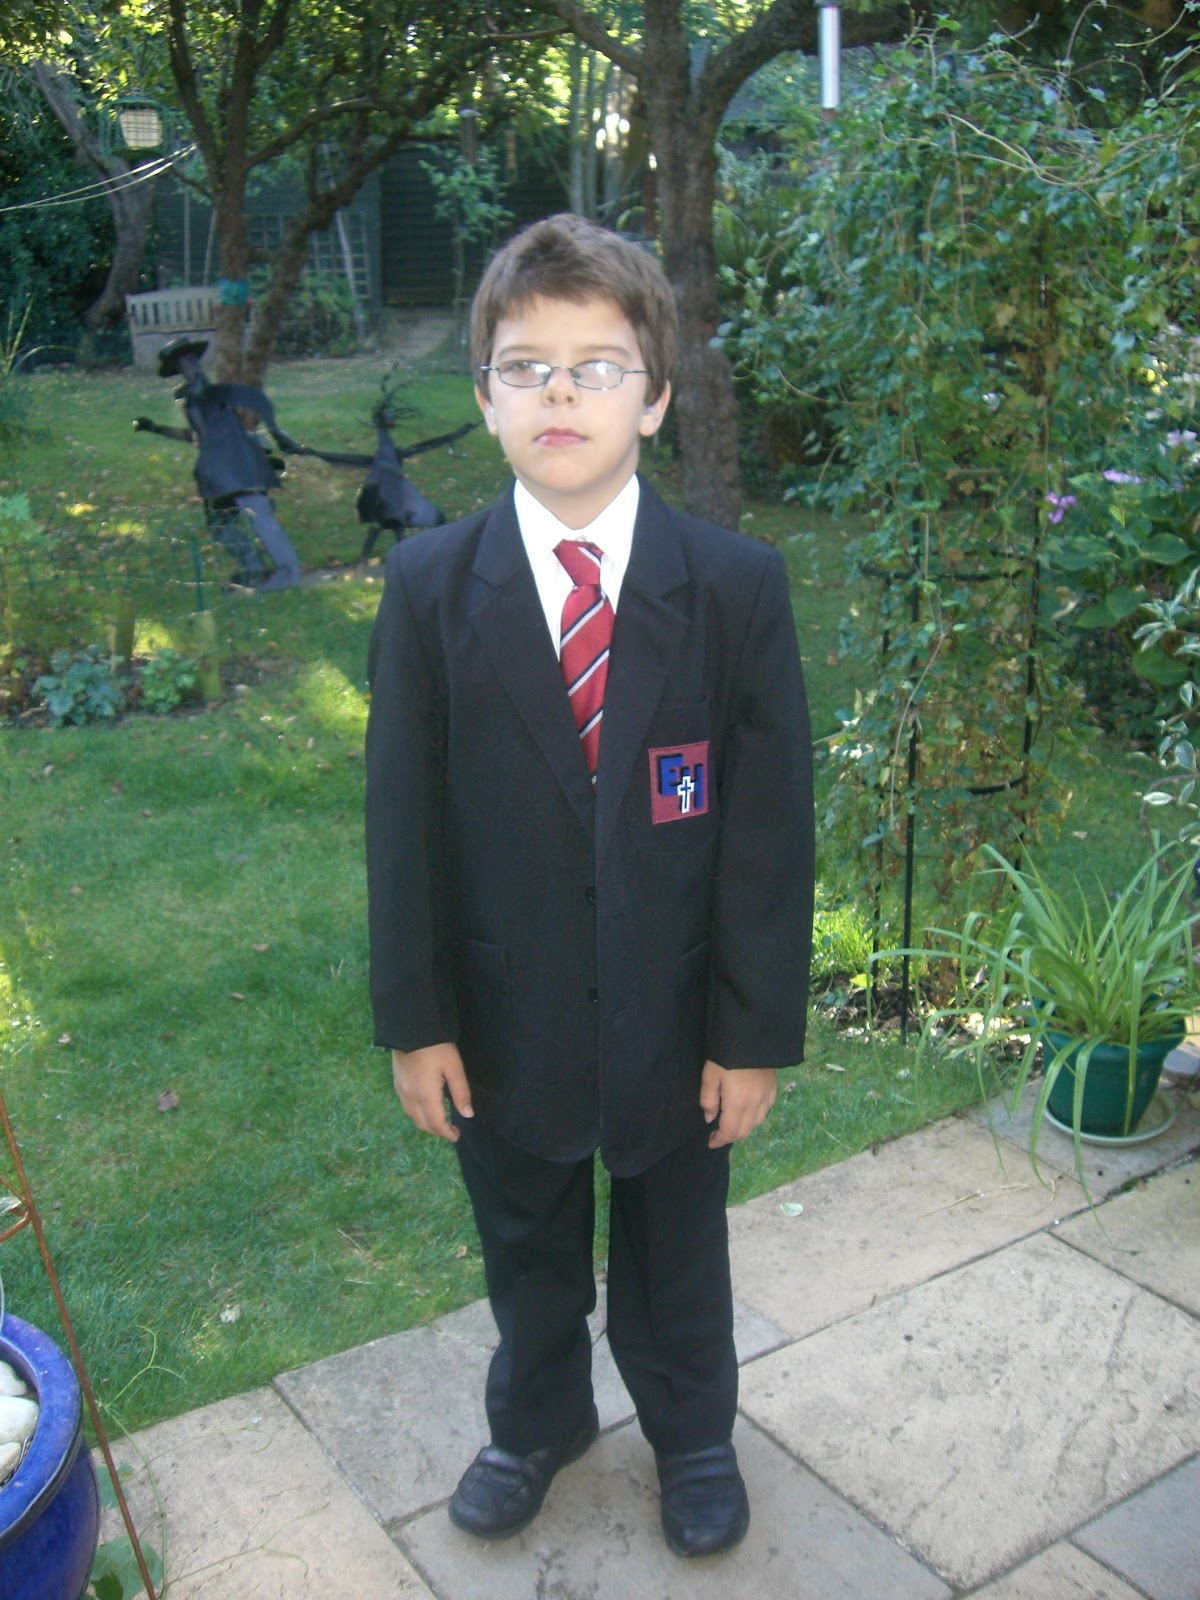 The First Day At Secondary School